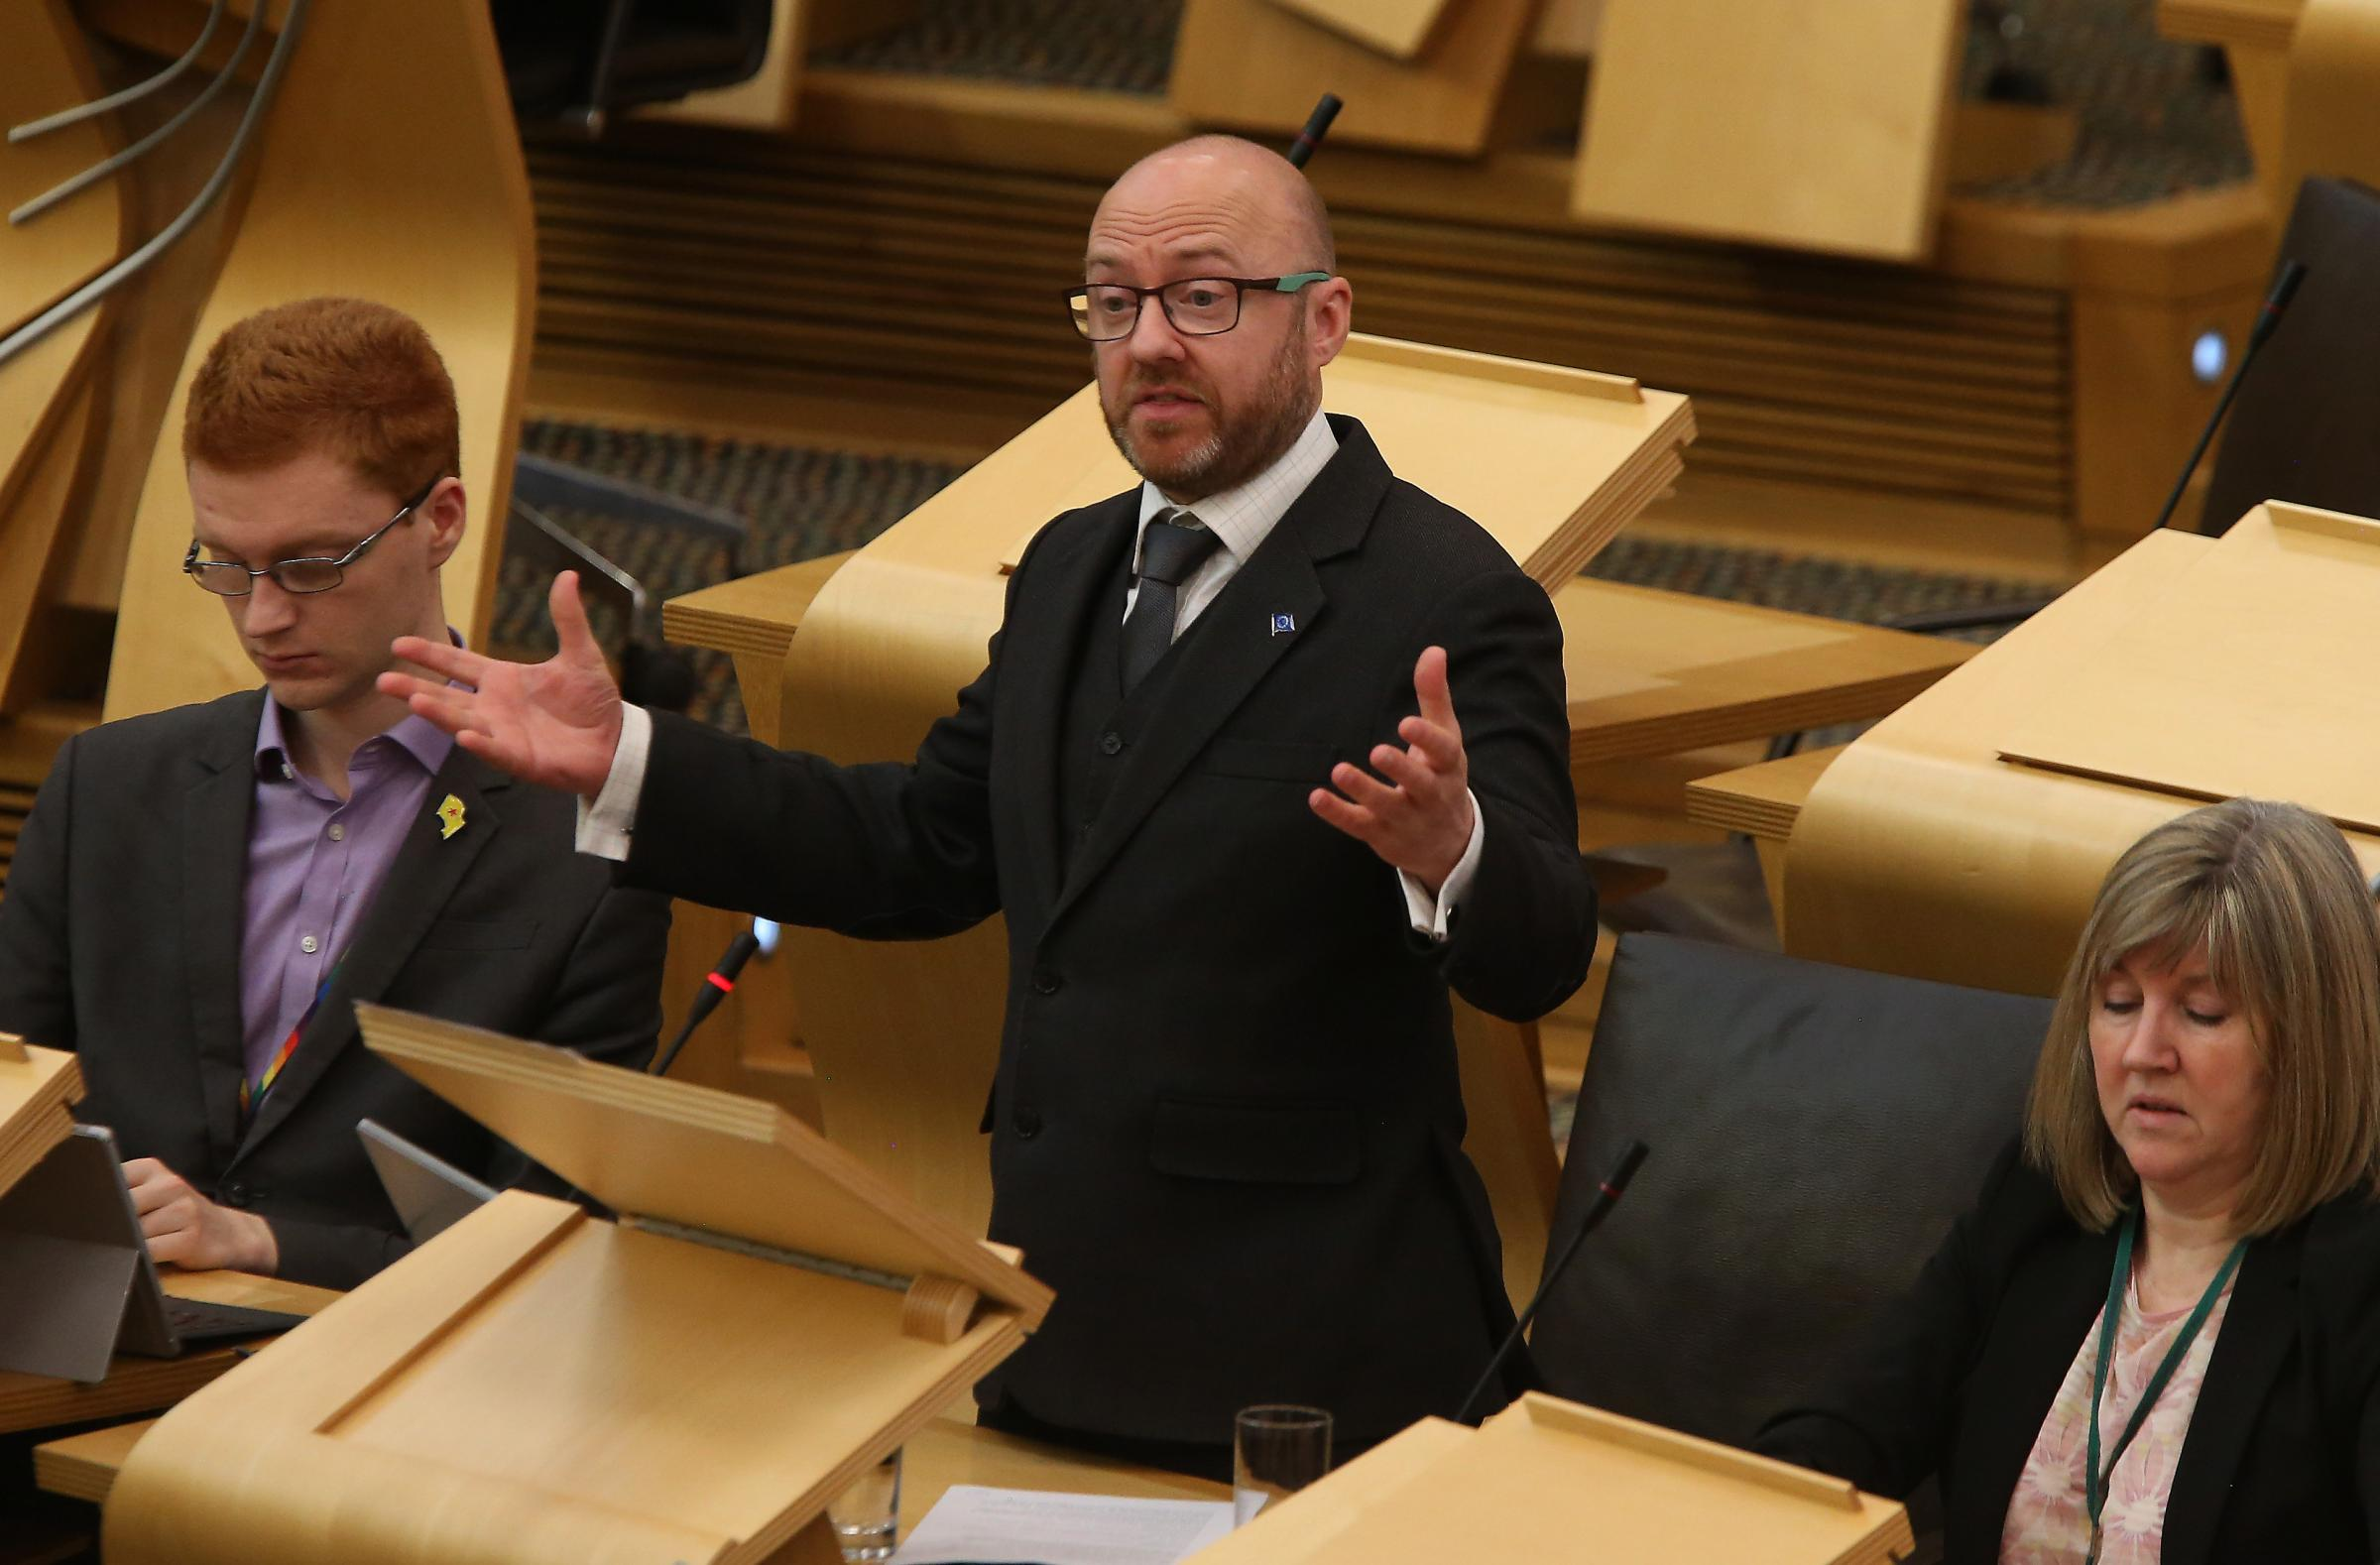 Patrick Harvie calls for New Green Deal for Scotland